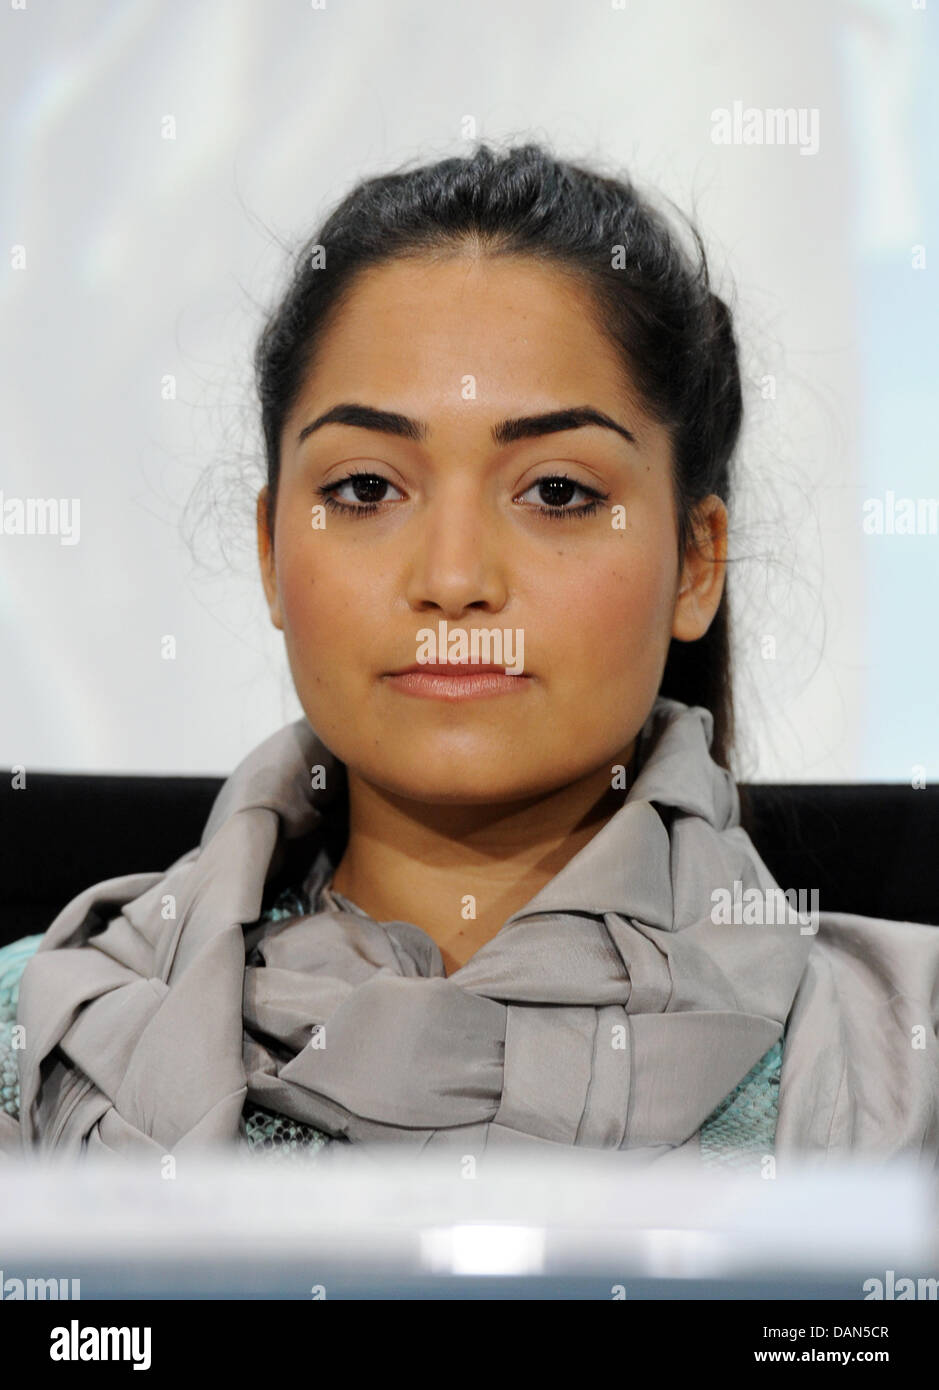 Singer Bahar Kizil attends a press conference at the start of the youth conpetition 'Home Almanya - Show us - Stock Image